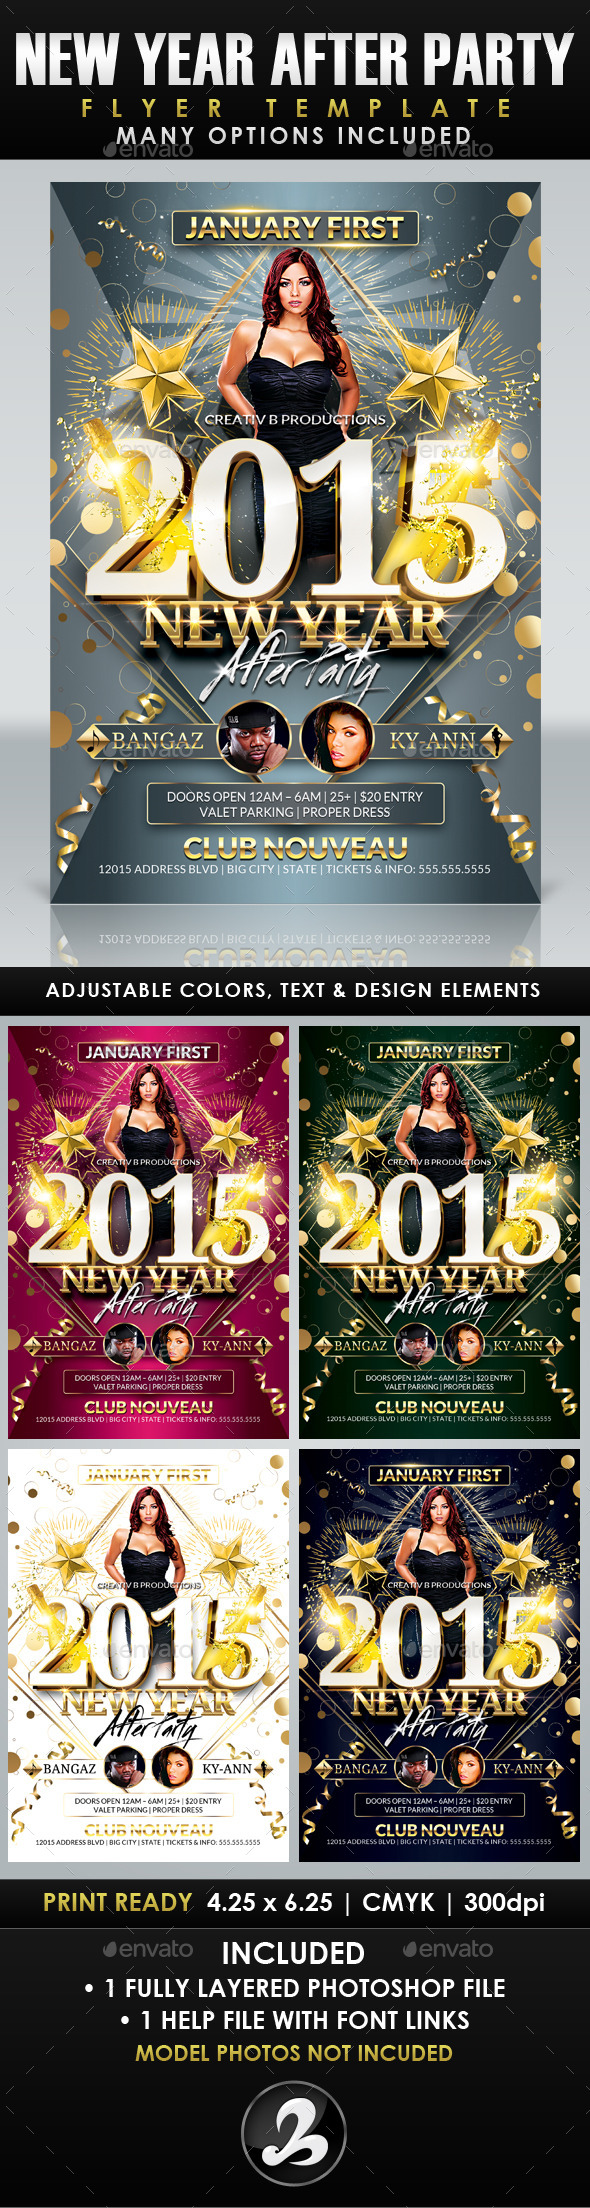 GraphicRiver New Year After Party Flyer Template 9819911